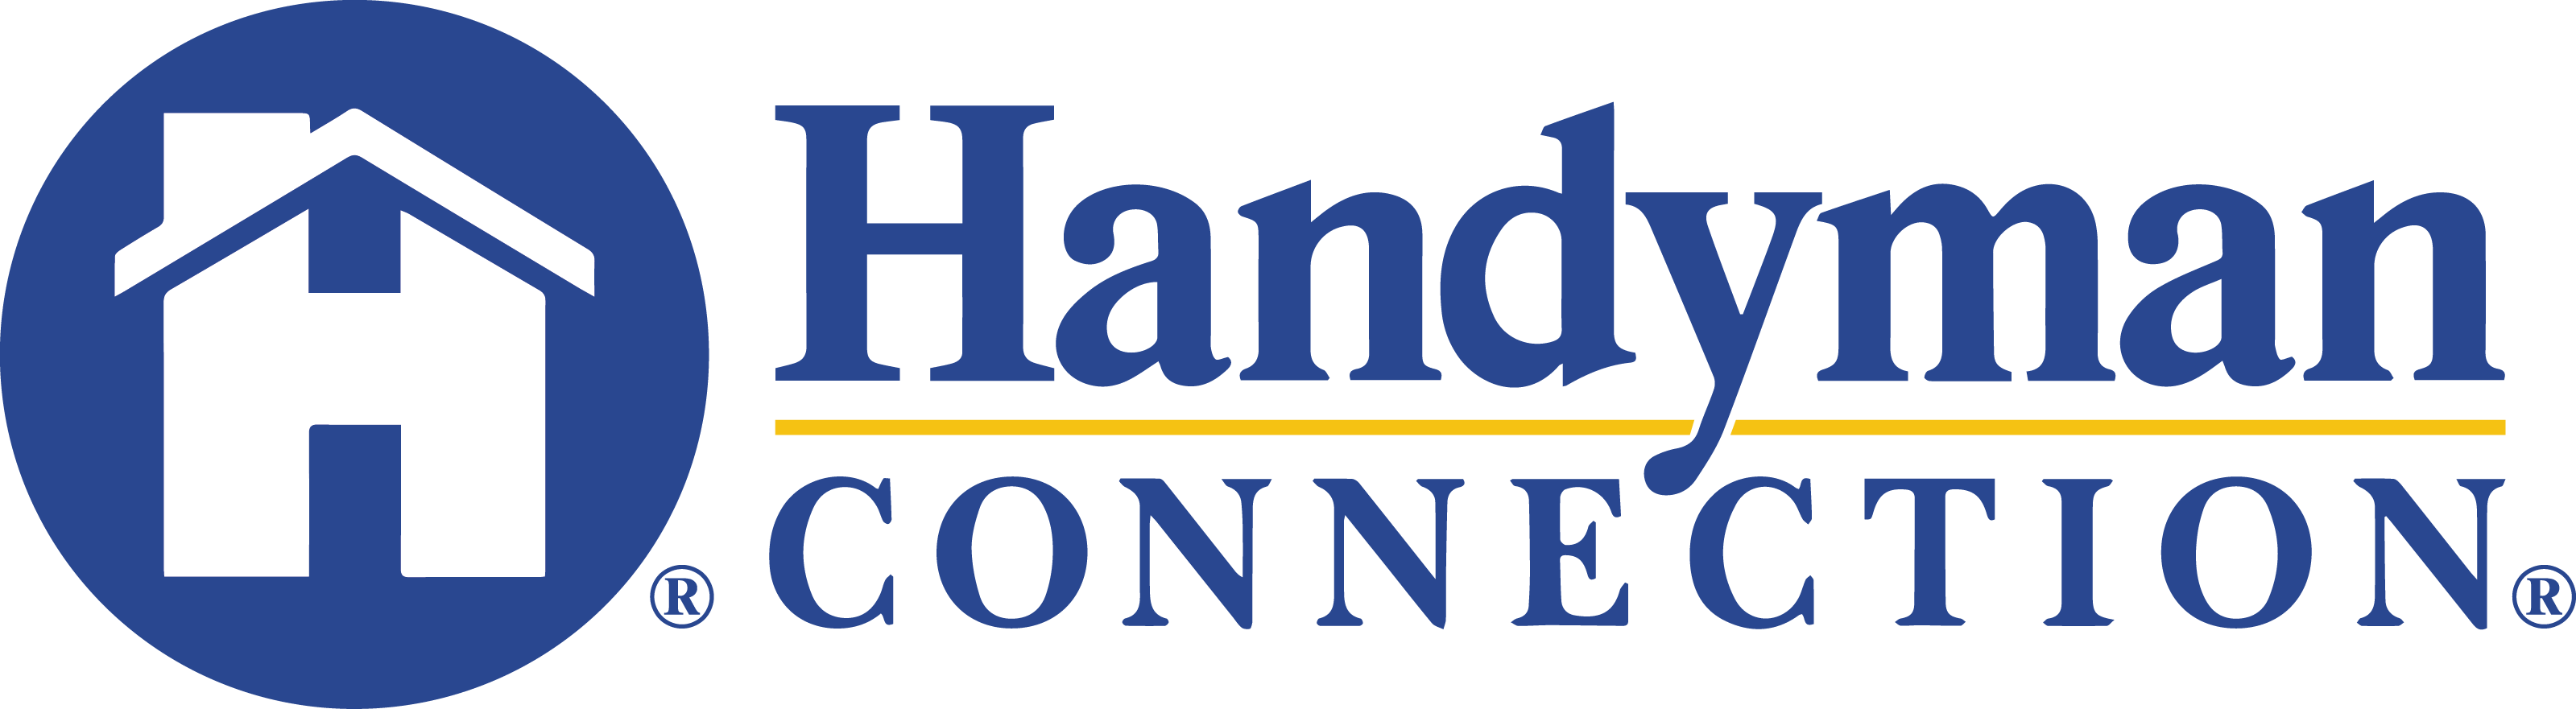 Handyman Connection of Lincoln, NE